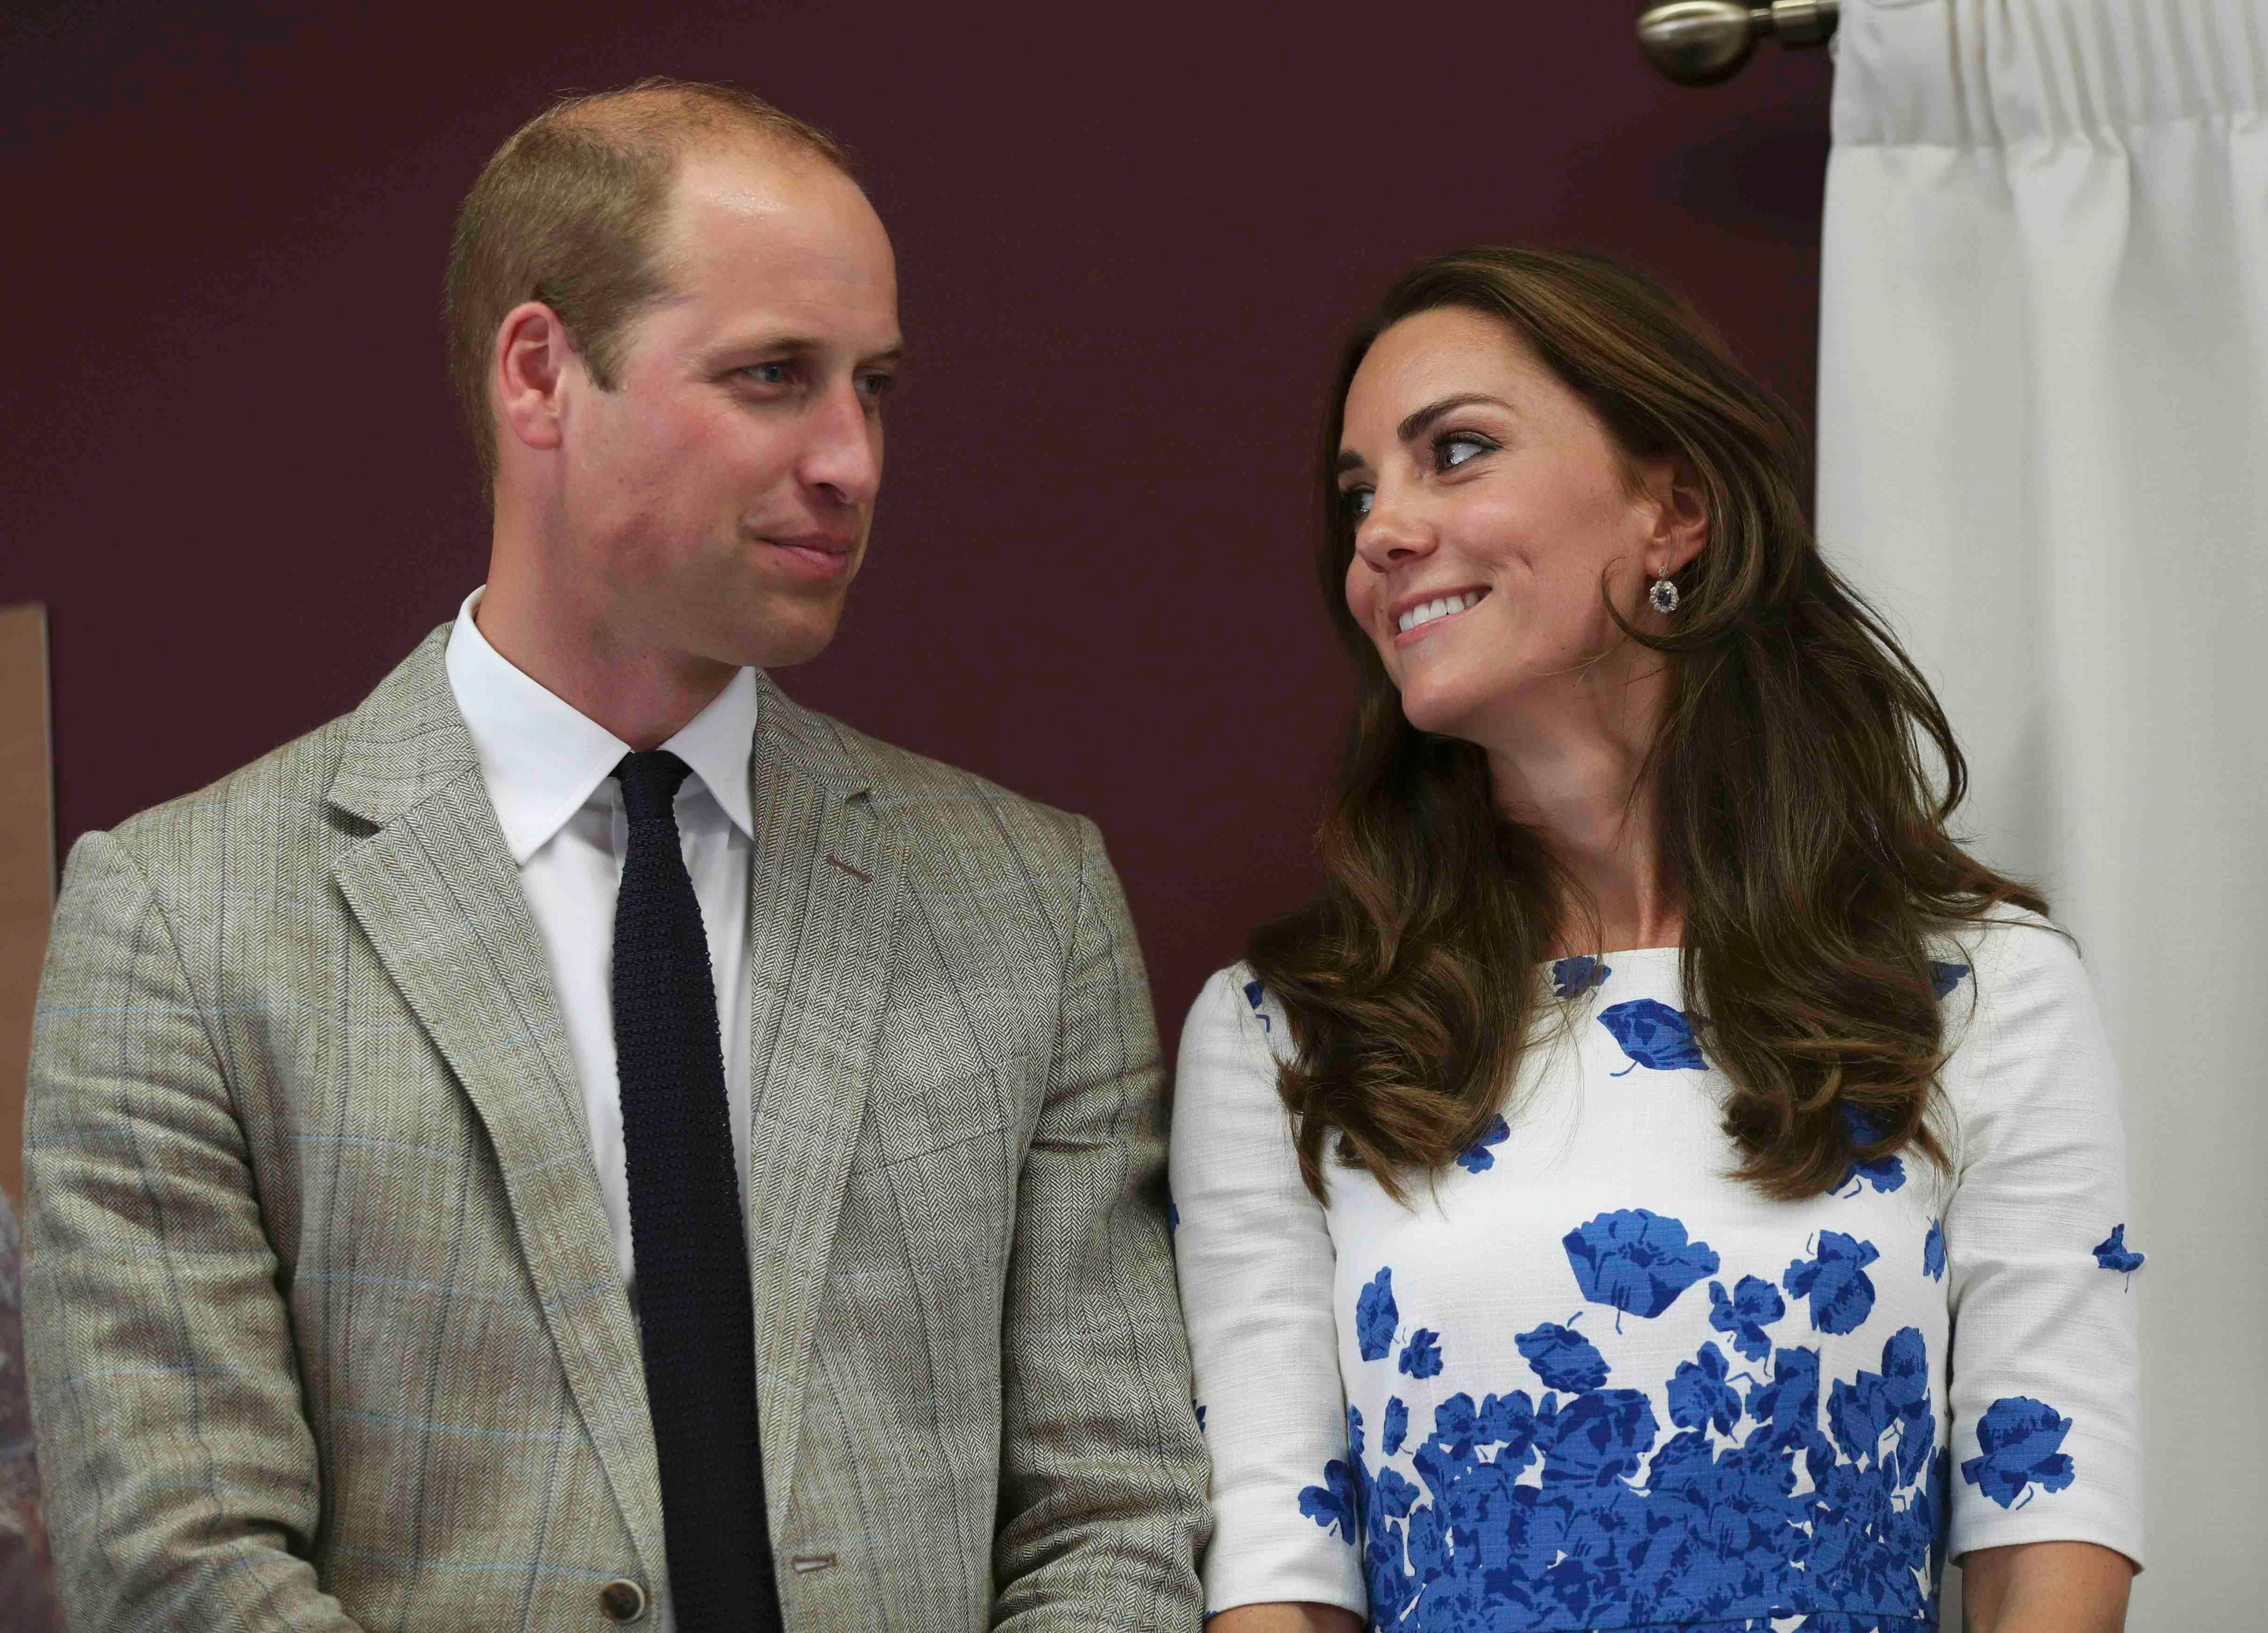 Catherine, Duchess of Cambridge and Prince William, Duke of Cambridge listen to a speech at their visit to Keech Hospice Care on August 24, 2016   Photo: Getty Images